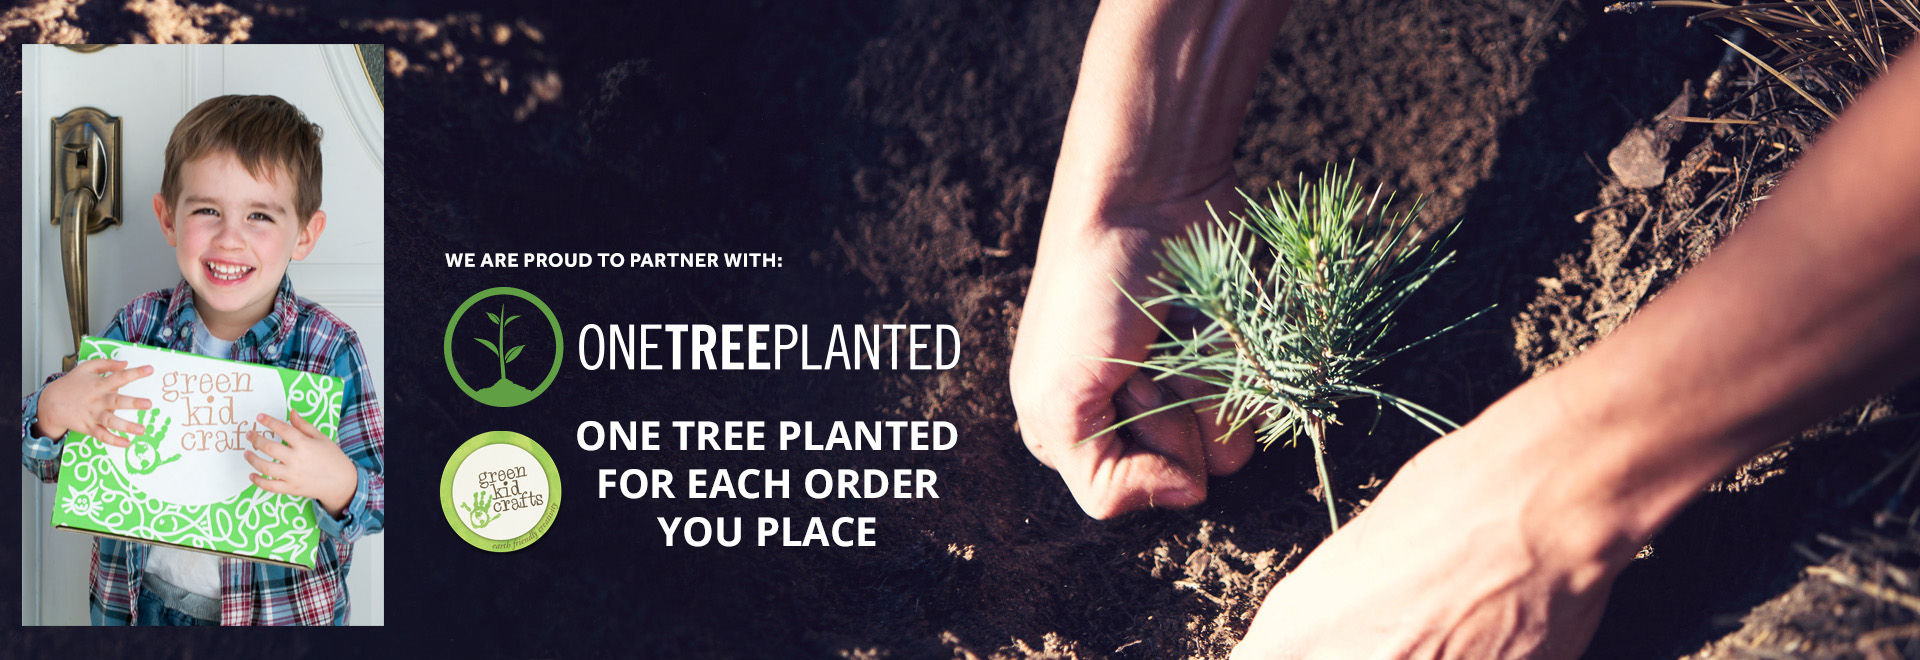 Green Kid Crafts plants one tree for each online order